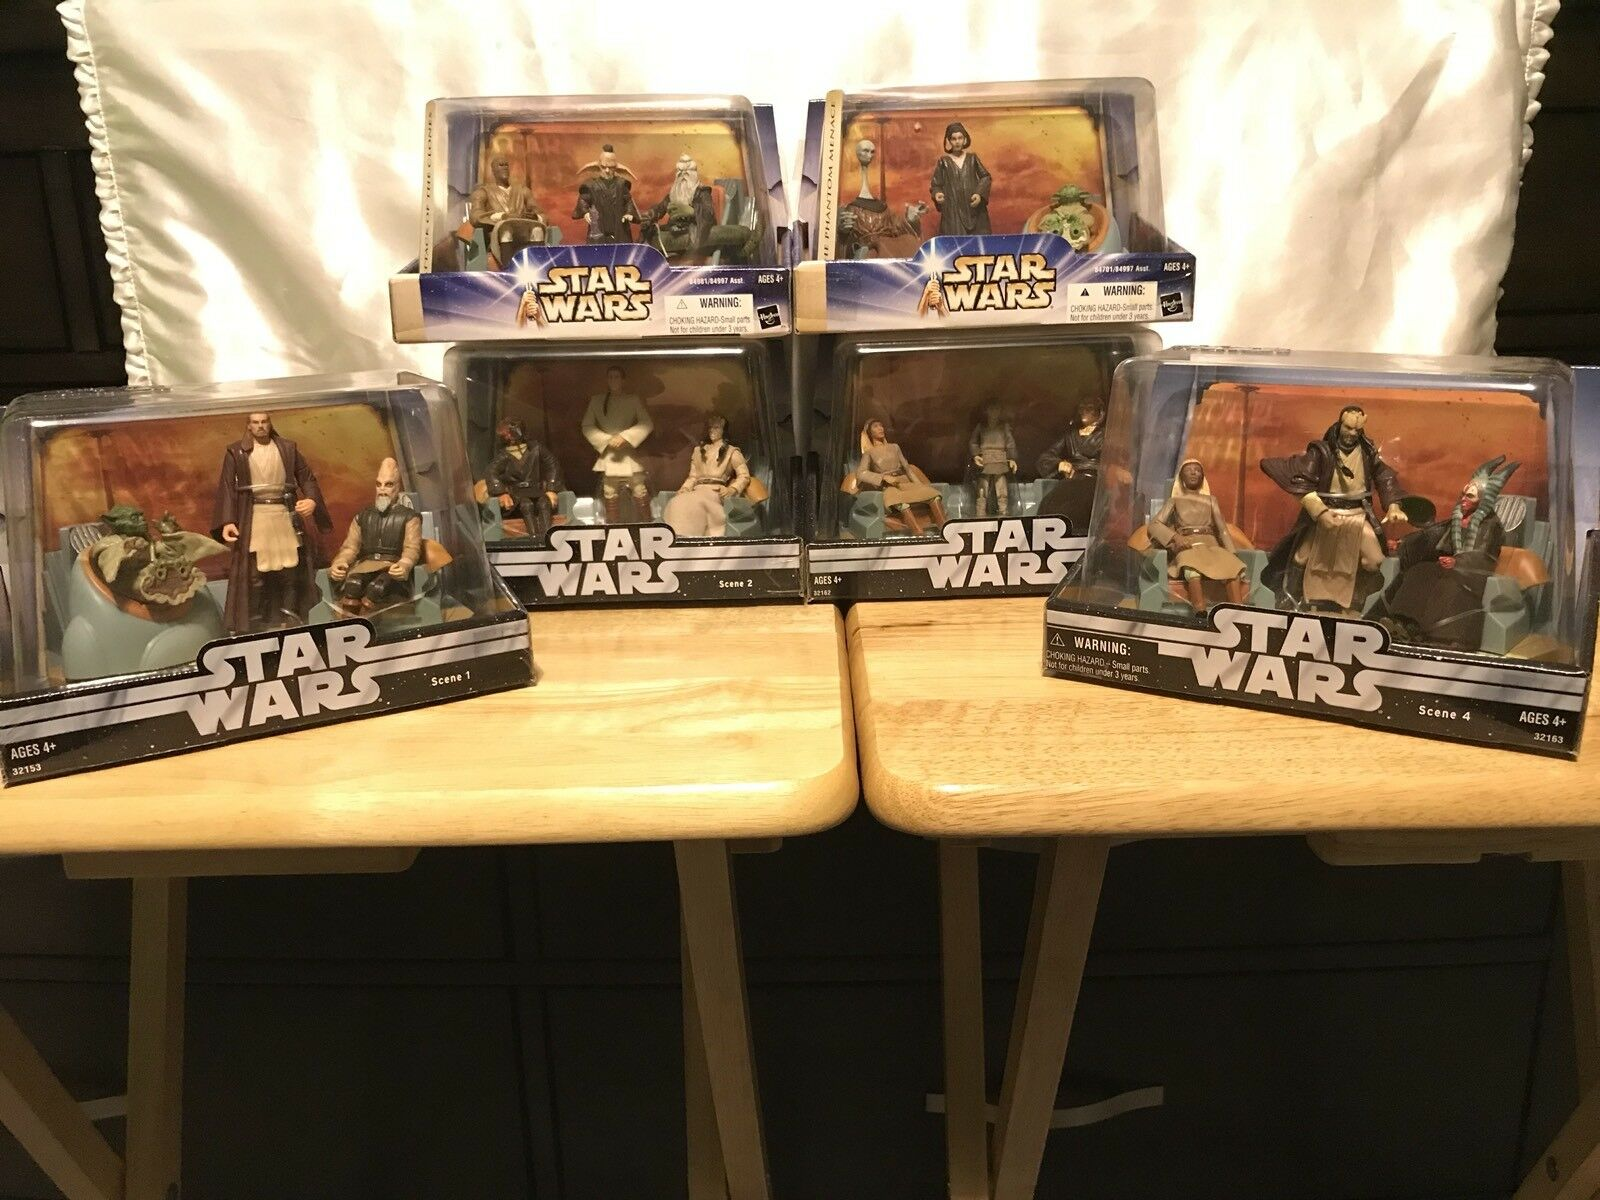 Star Wars Action Figures Jedi High Council Scene 1-4 & Scene 1-2 Complete Set